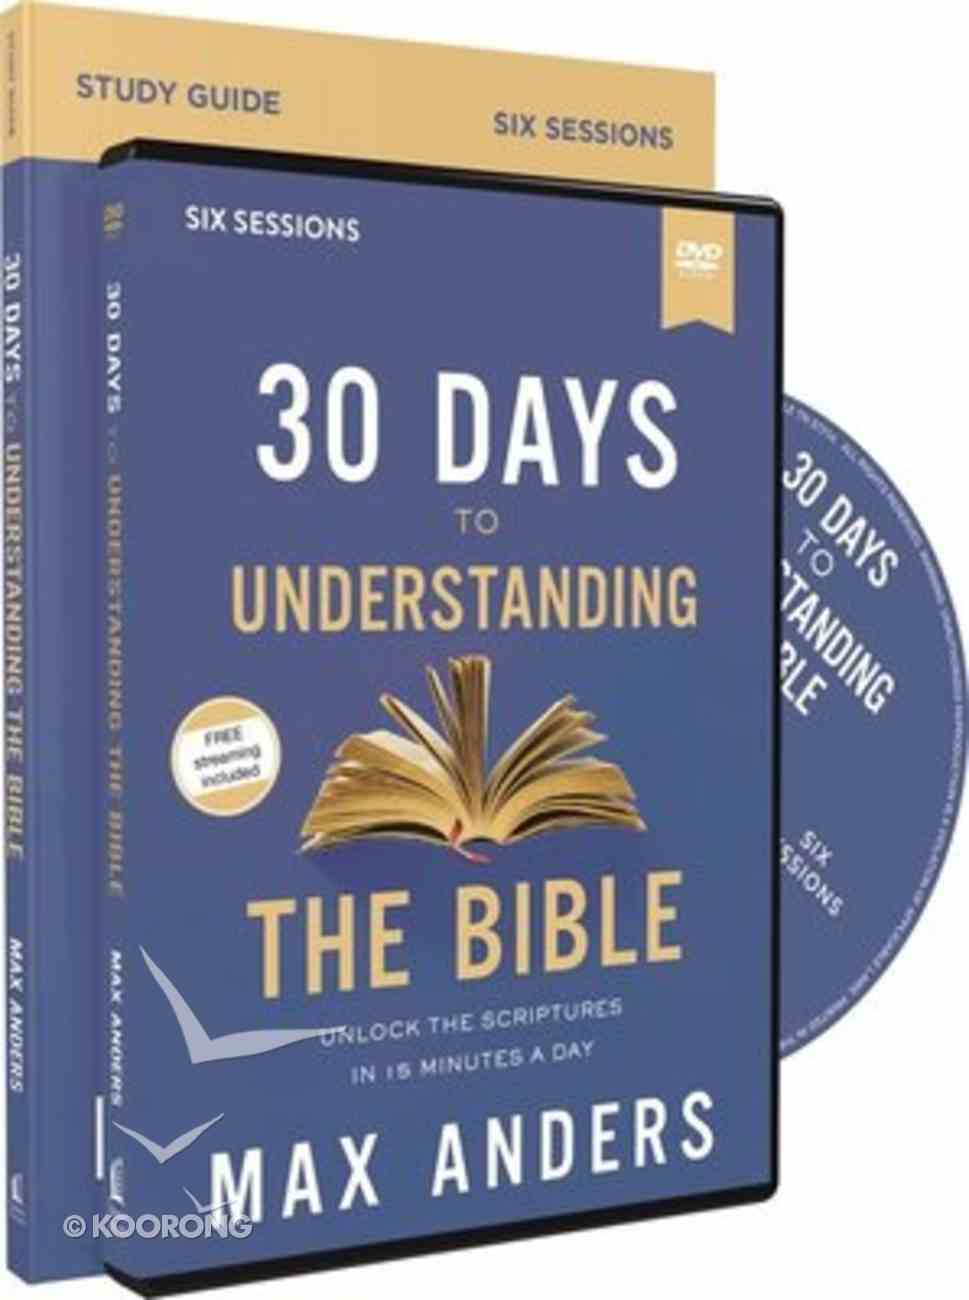 30 Days to Understanding the Bible: Unlock the Scriptures in 15 Minutes a Day (6 Sessions) (Study Guide And Dvd) Pack